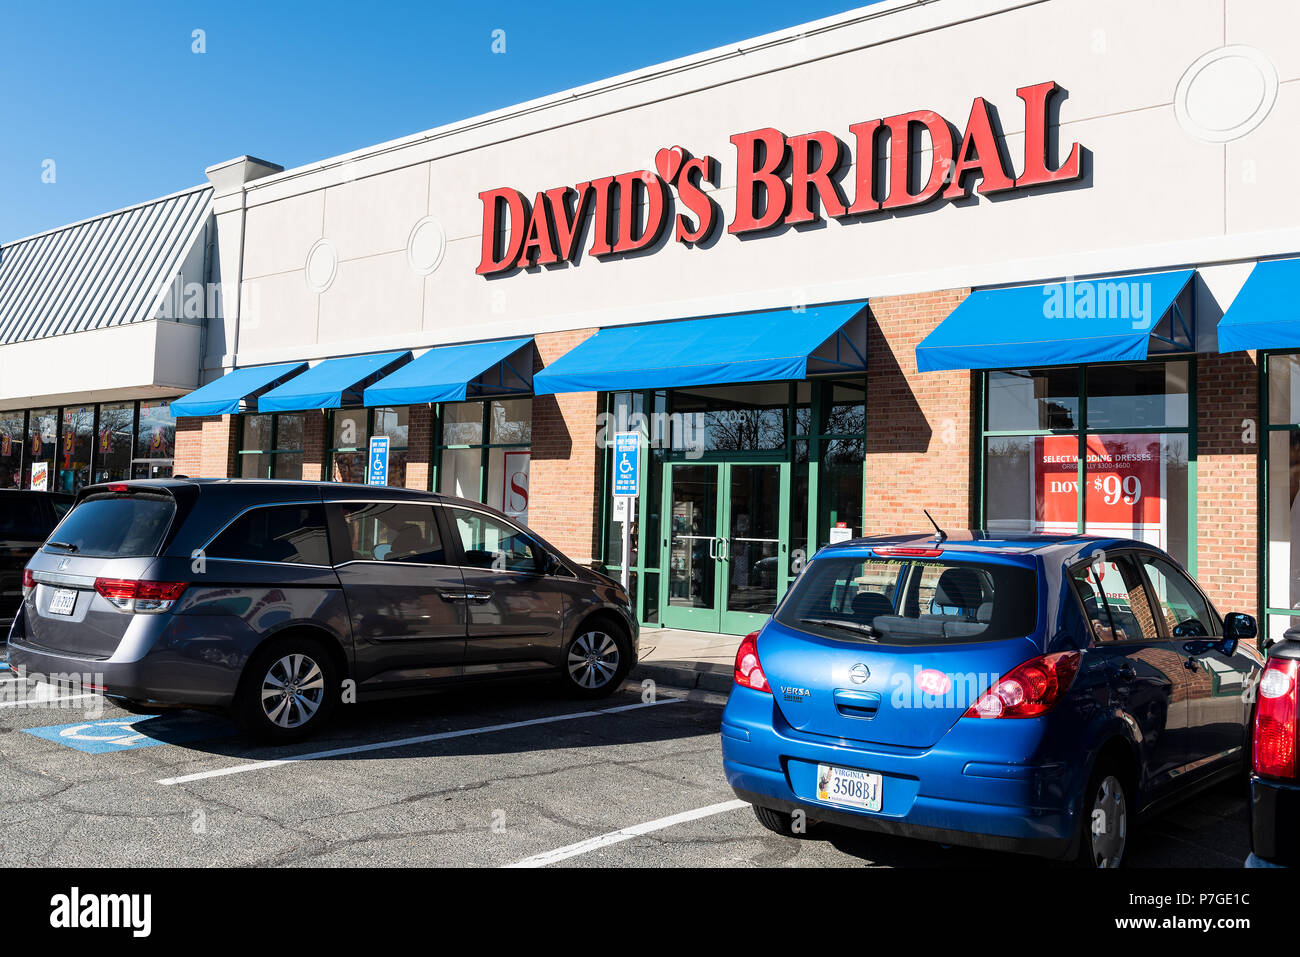 Car Showroom Usa Stockfotos & Car Showroom Usa Bilder - Alamy